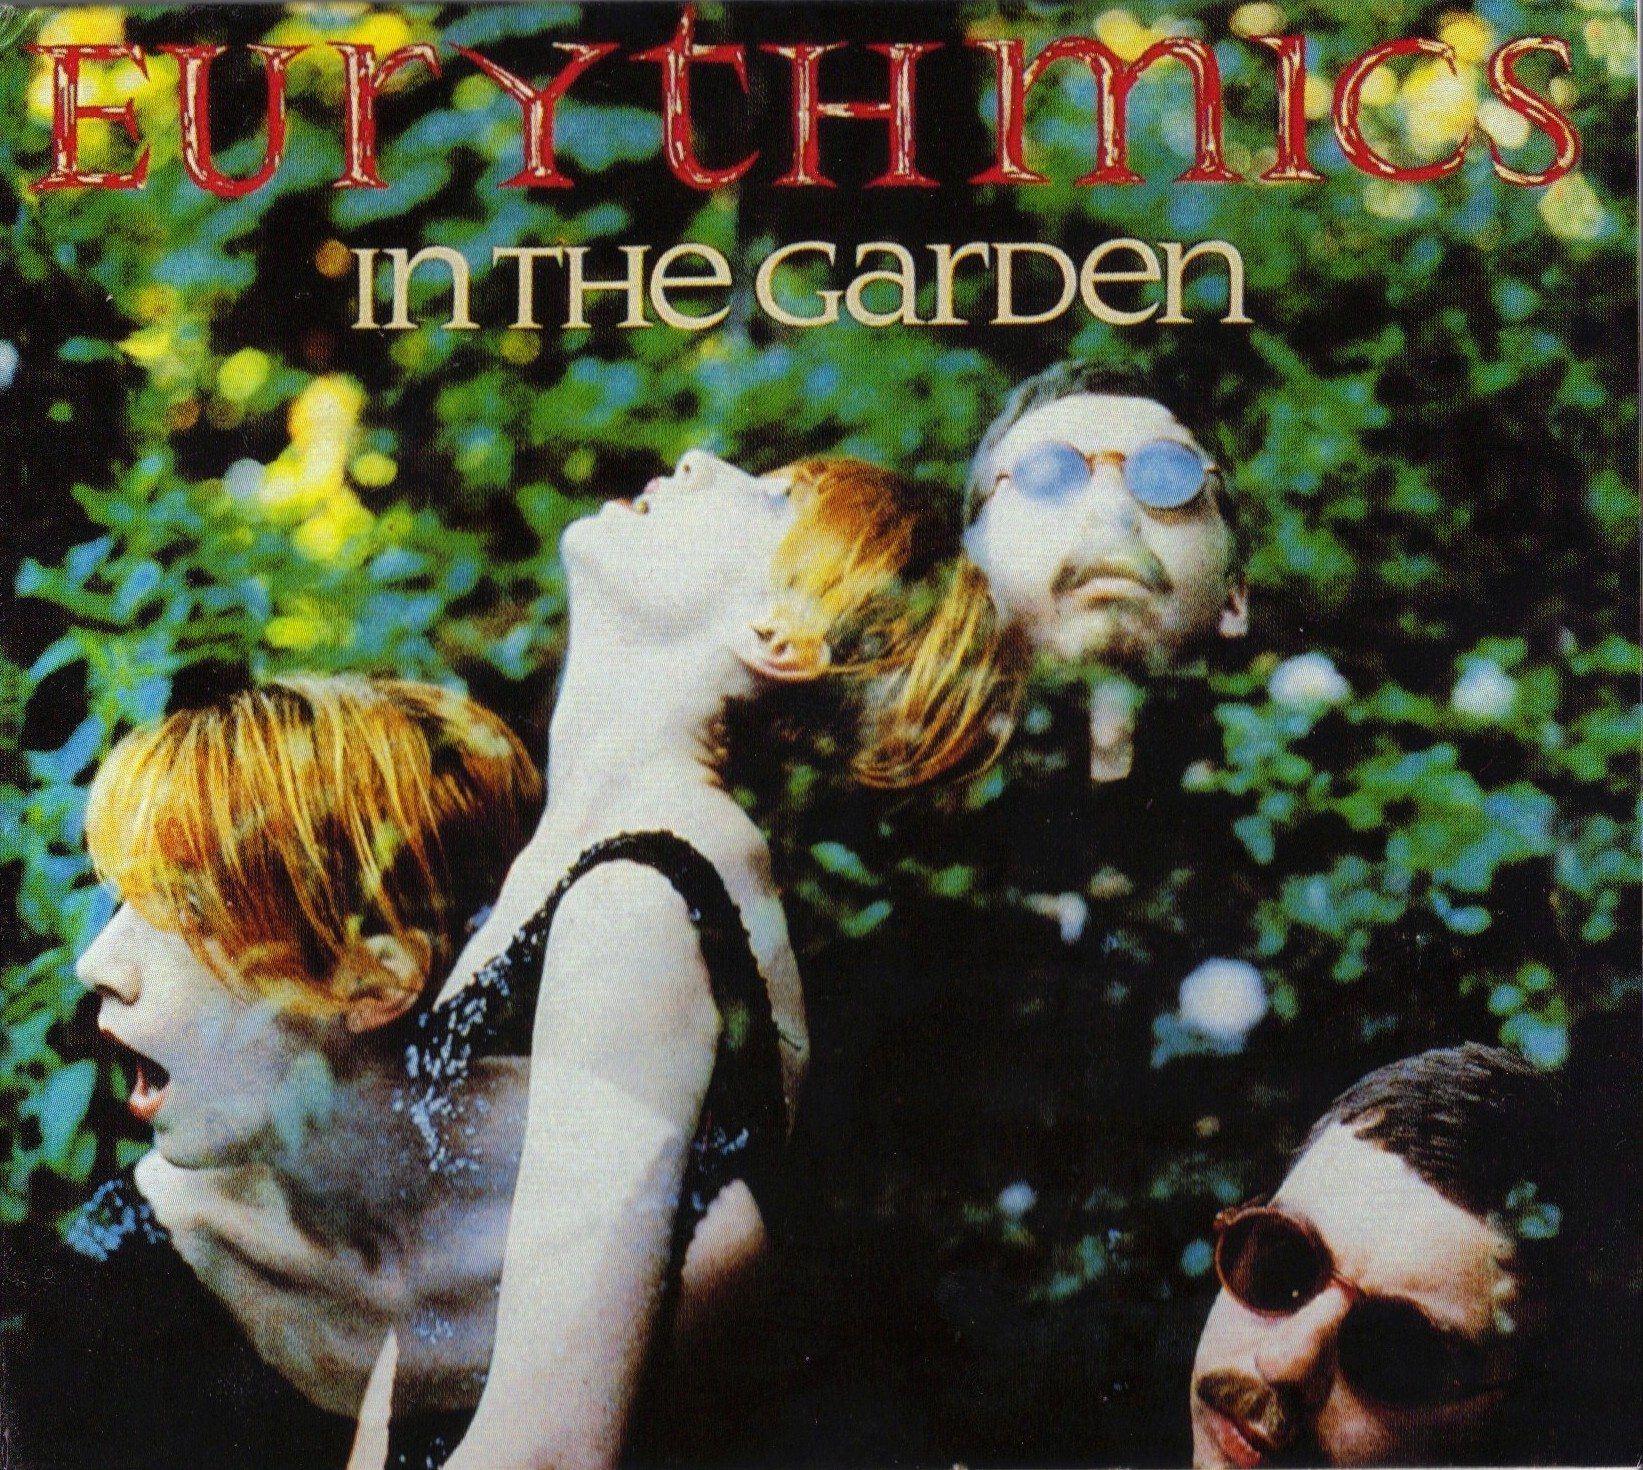 On This Day – 16th October 1981 – Eurythmics released their debut album In The Garden 33 years ago